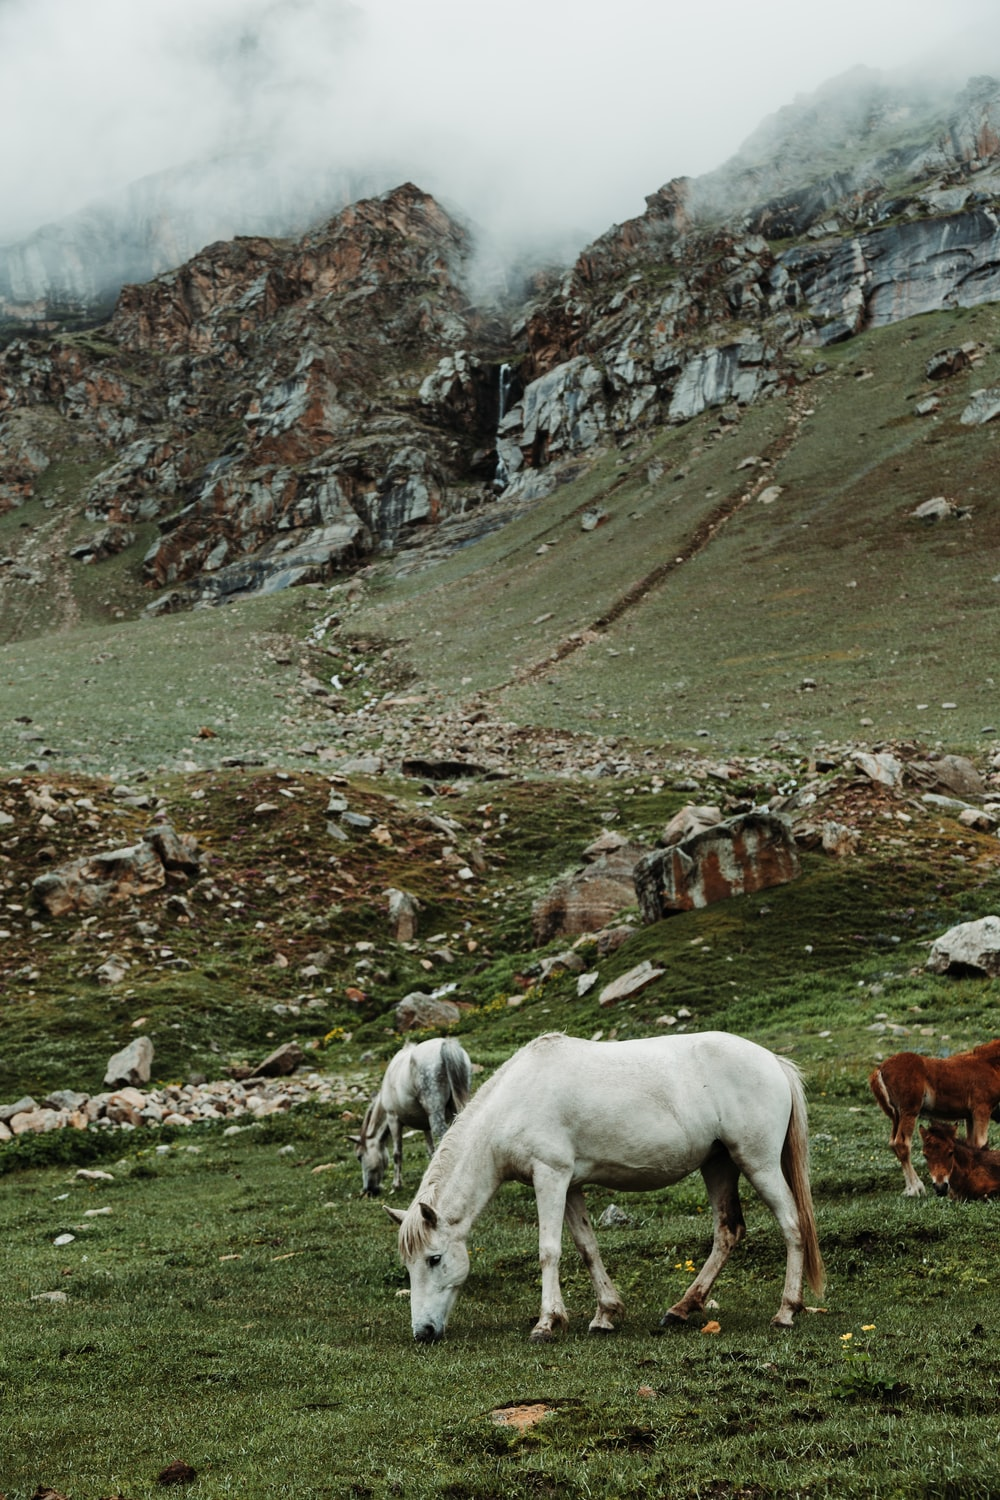 white and brown horses eating grasses in green field viewing mountain under white and gray sky during daytime